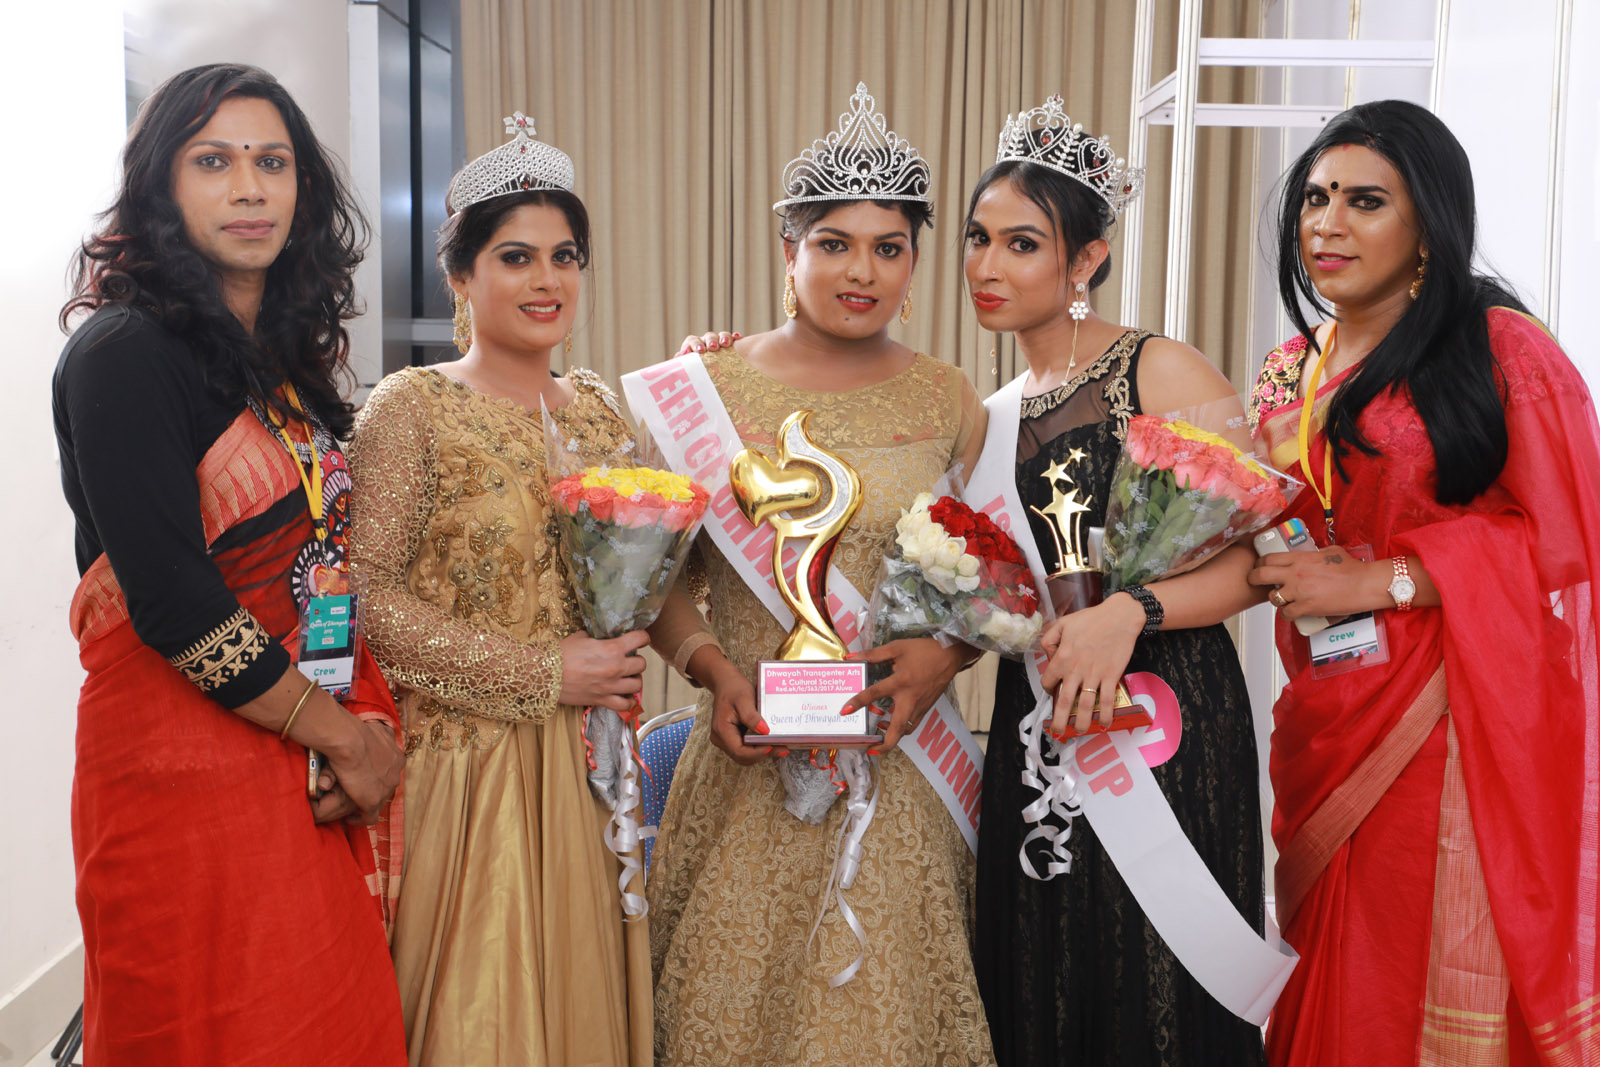 The winners with transgender activists Sheetal Shyam and Renju Renjimar. Photo credit: Justin Anthony